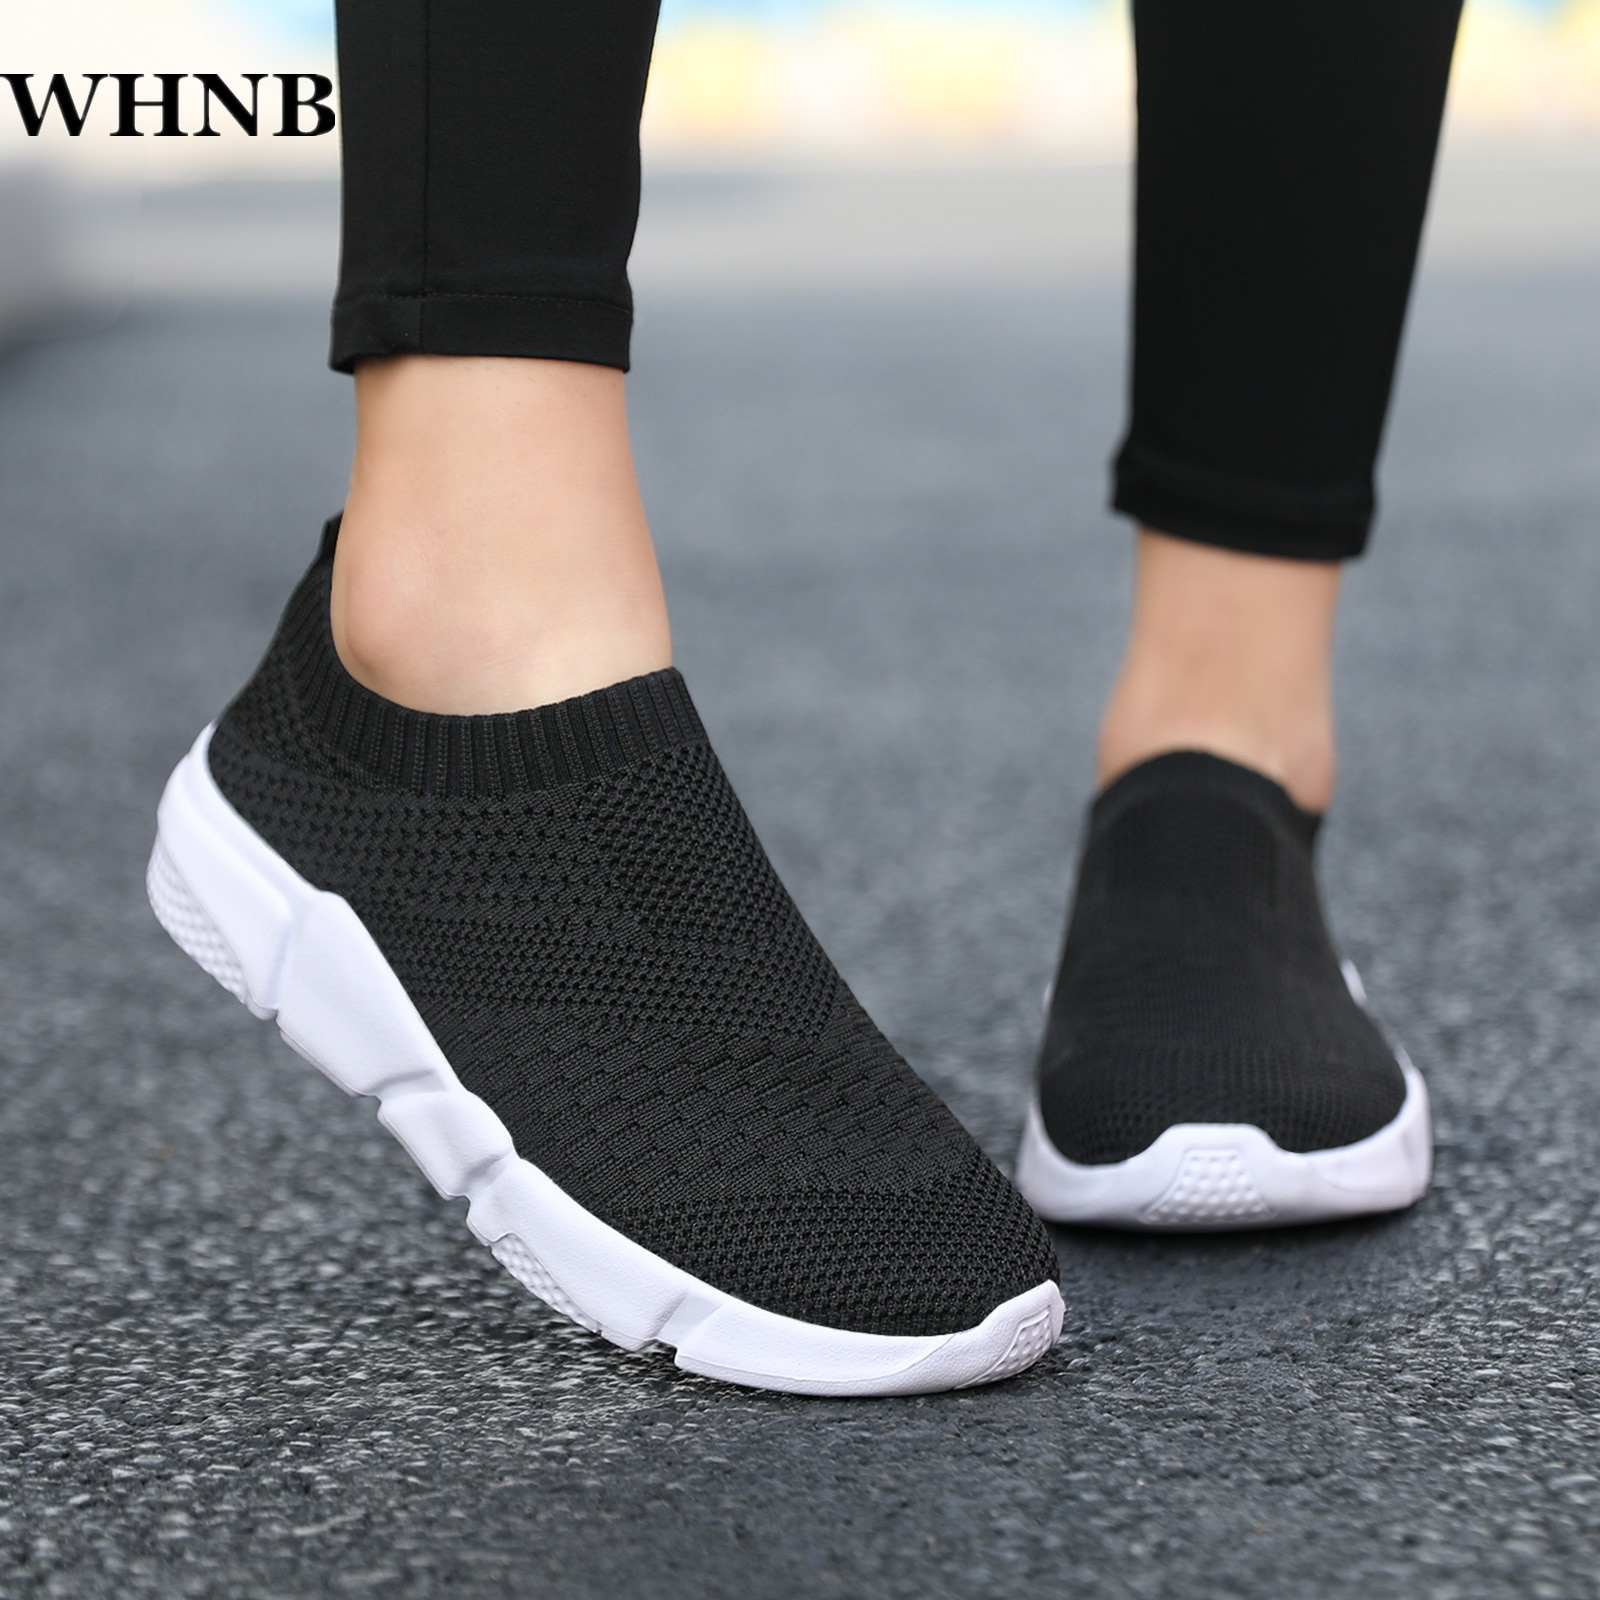 WHNB Flat Slip on Black Shoes Woman Lightweight Walking Sock Sneakers Summer Casual Chaussures Femme Tenis Loafers Plus Size 42